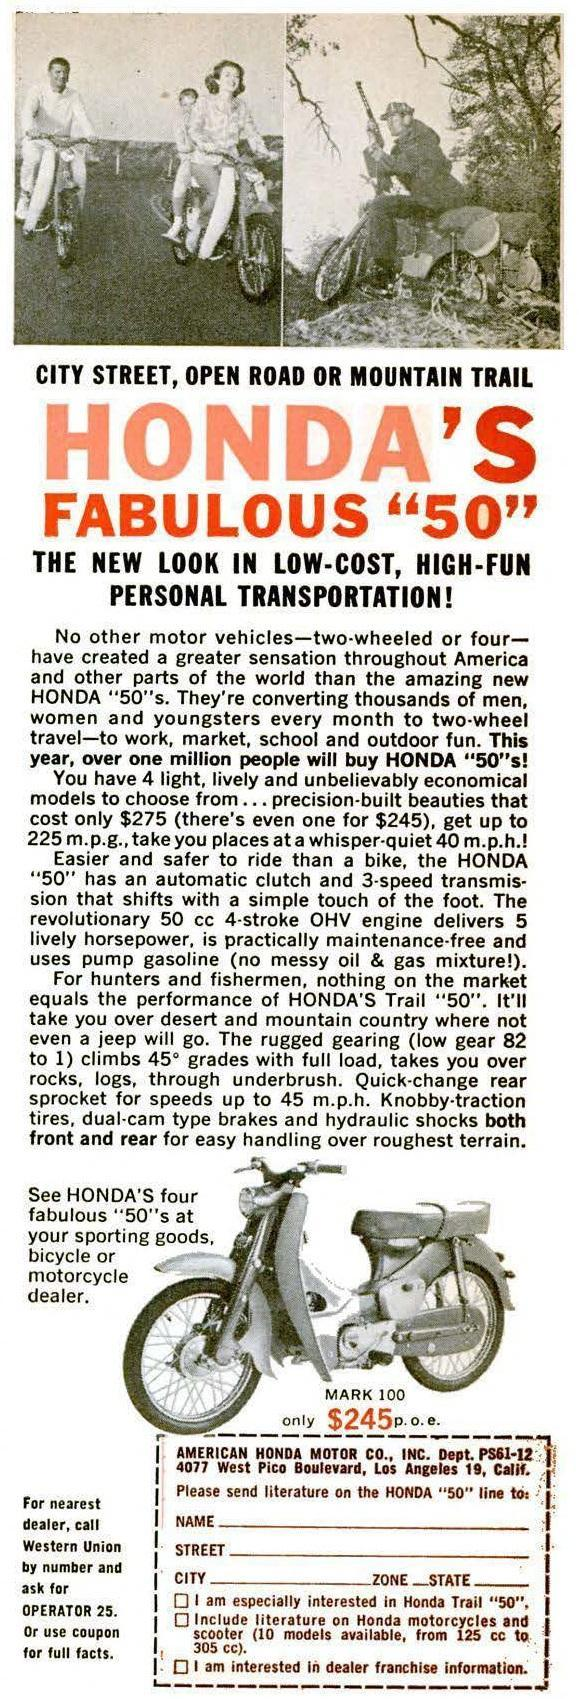 Popular Science dec 1961 p175 CA100T honda